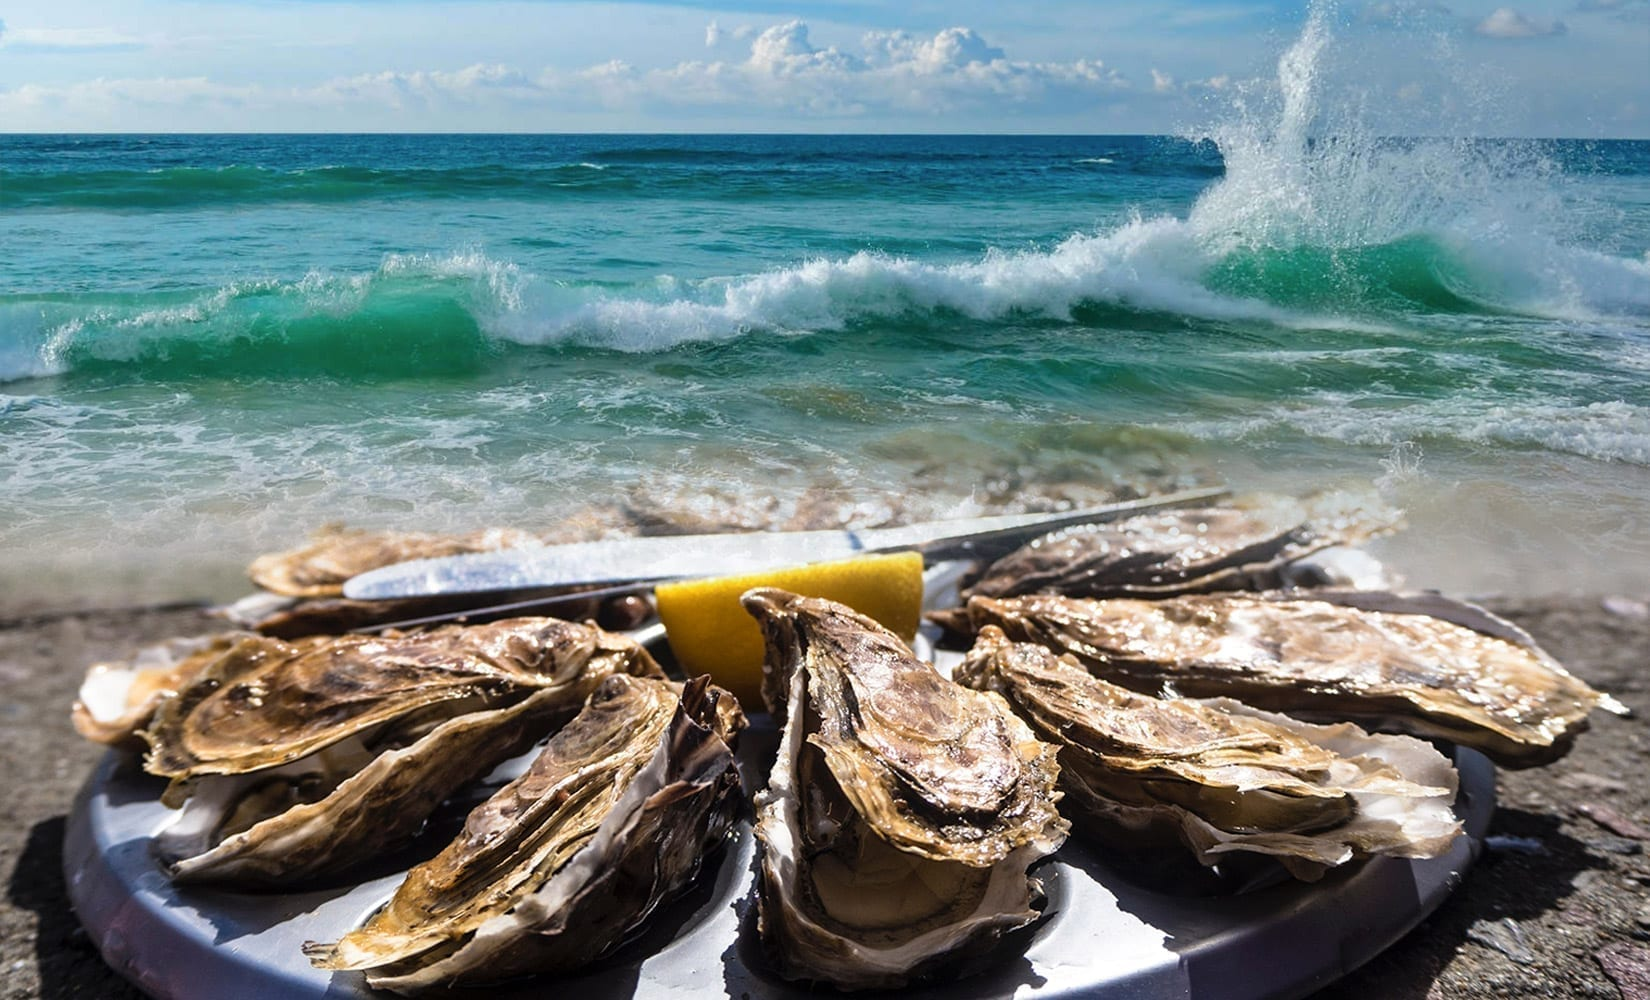 Awful Arthur's Oyster Bar header image background with waves crashing in the background and oysters and a lemon half